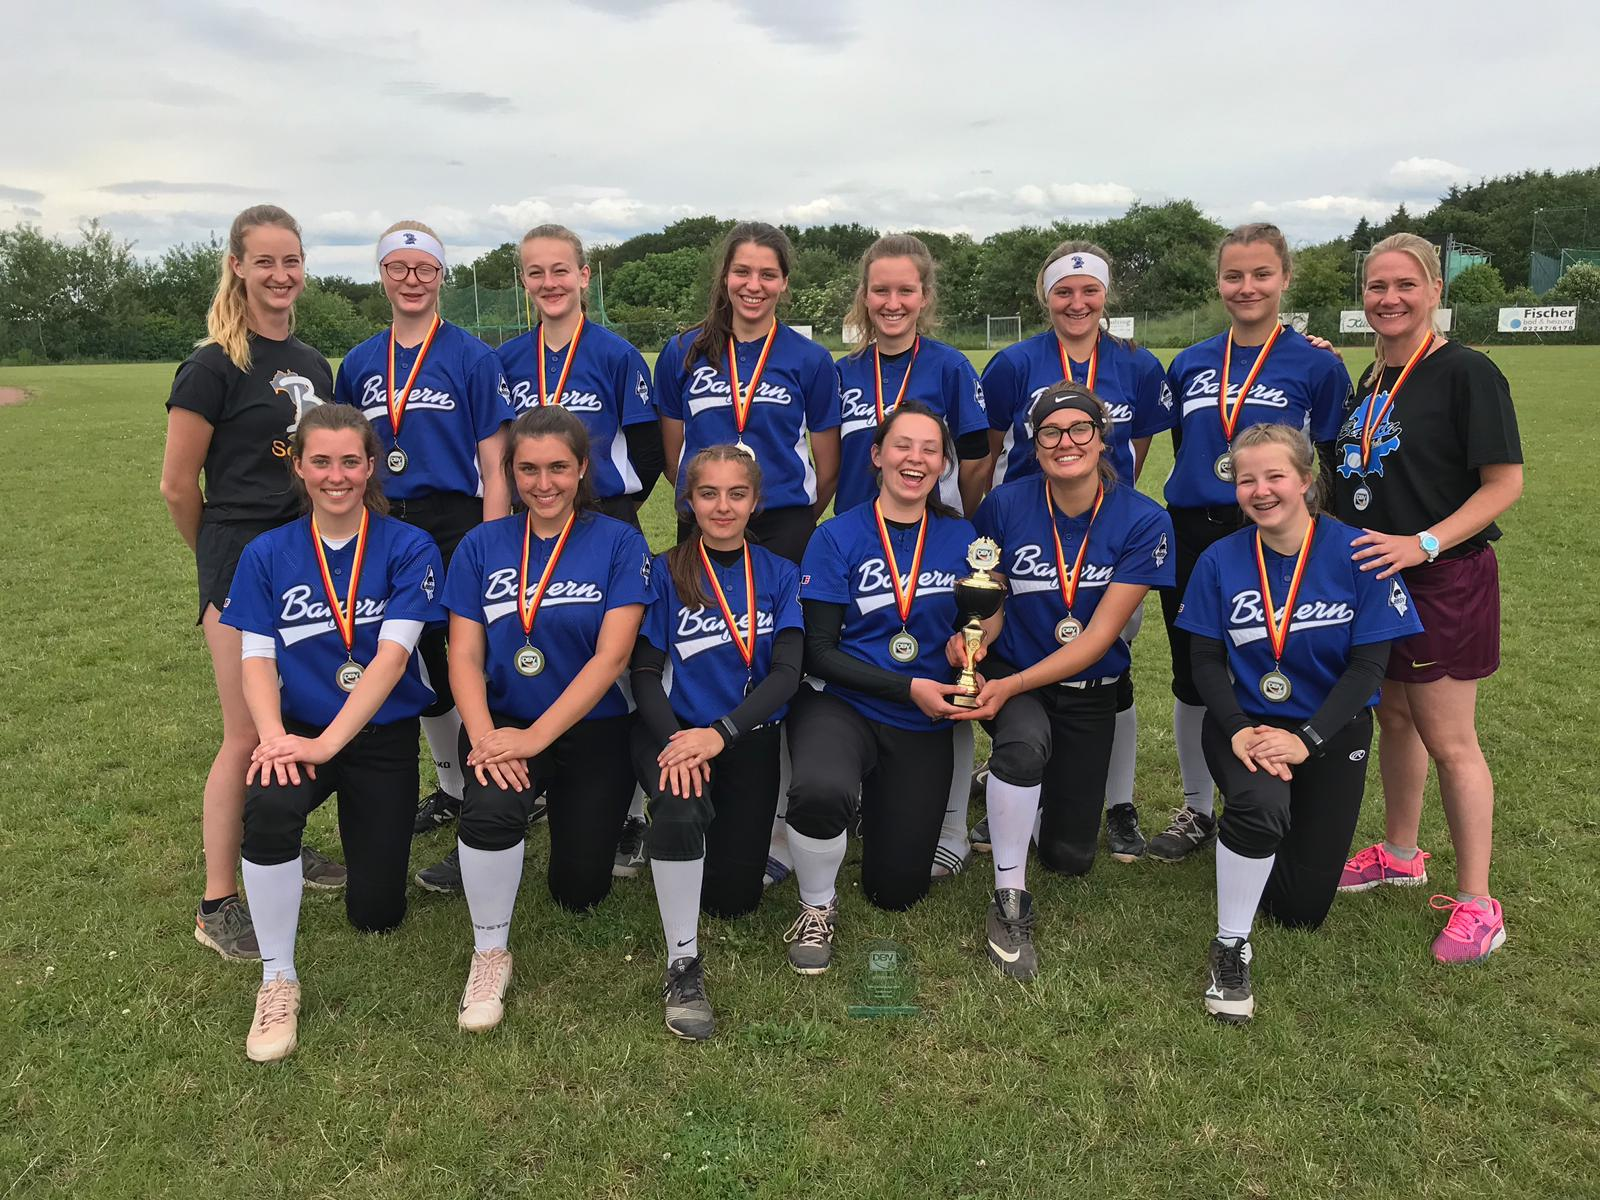 Länderpokal Softball Juniorinnen 2019 – Neunkirchen